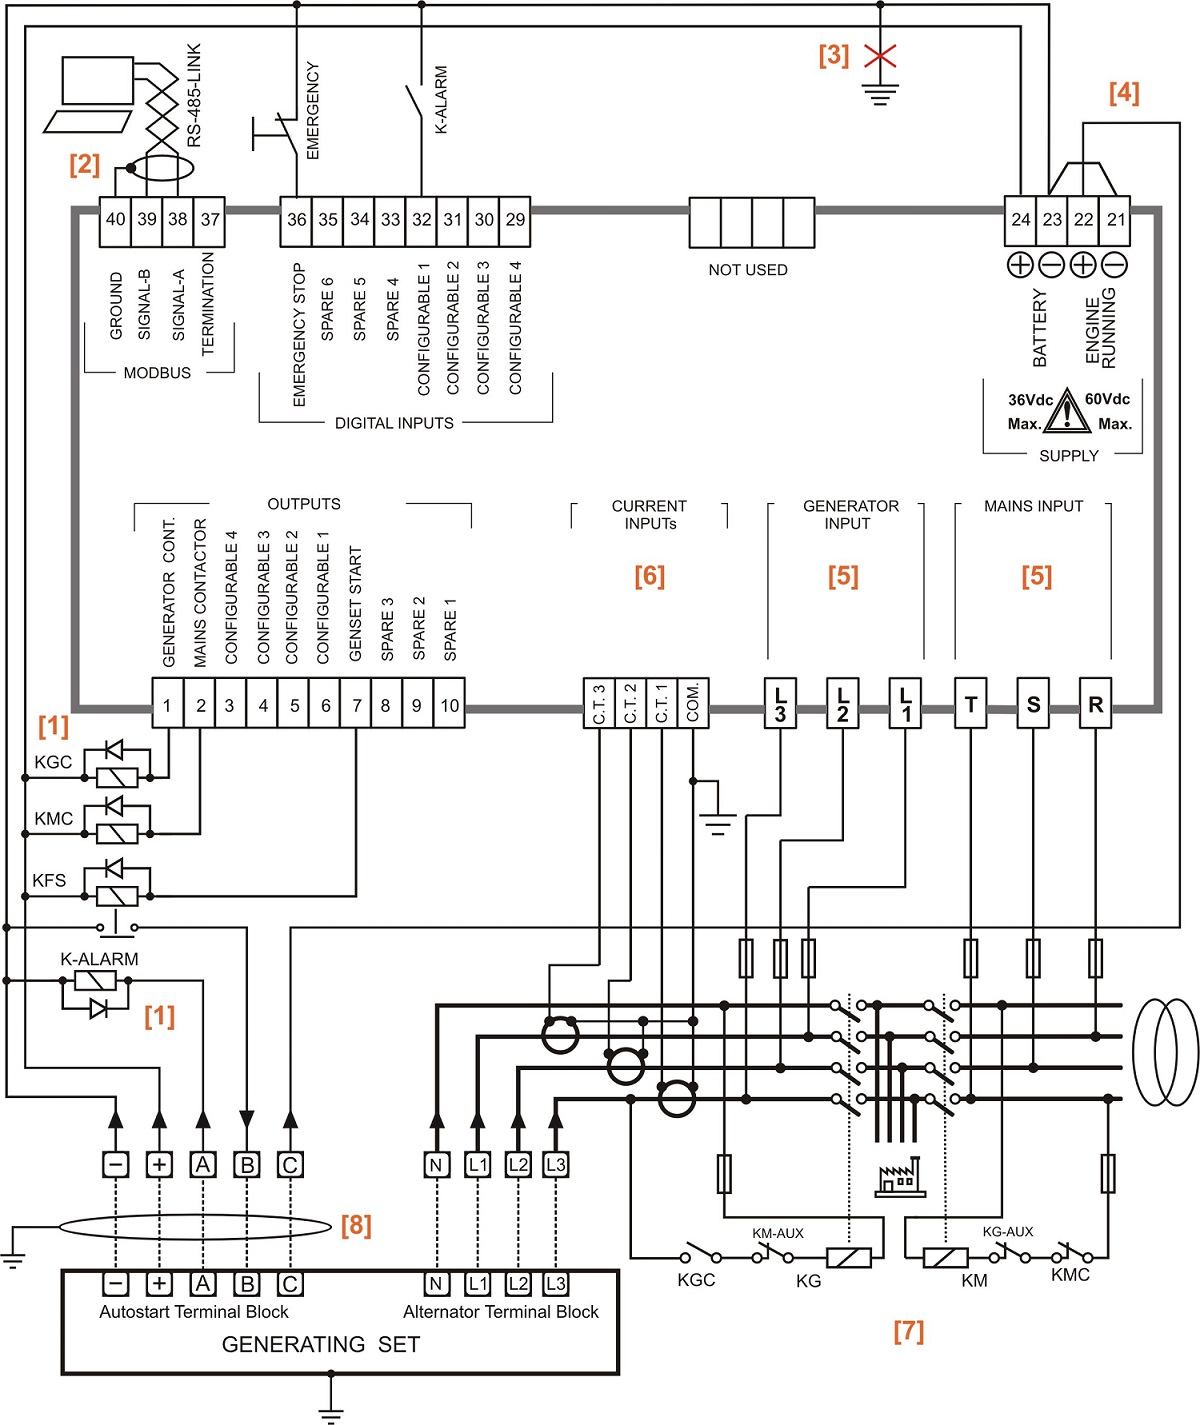 2002 Dodge Intrepid Cooling System Diagram additionally Standby Generator Wiring Diagram together with 50 Transfer Switch Wiring Diagram besides Onan Engine Wiring Diagram furthermore US6172432. on wiring diagram generac transfer switch